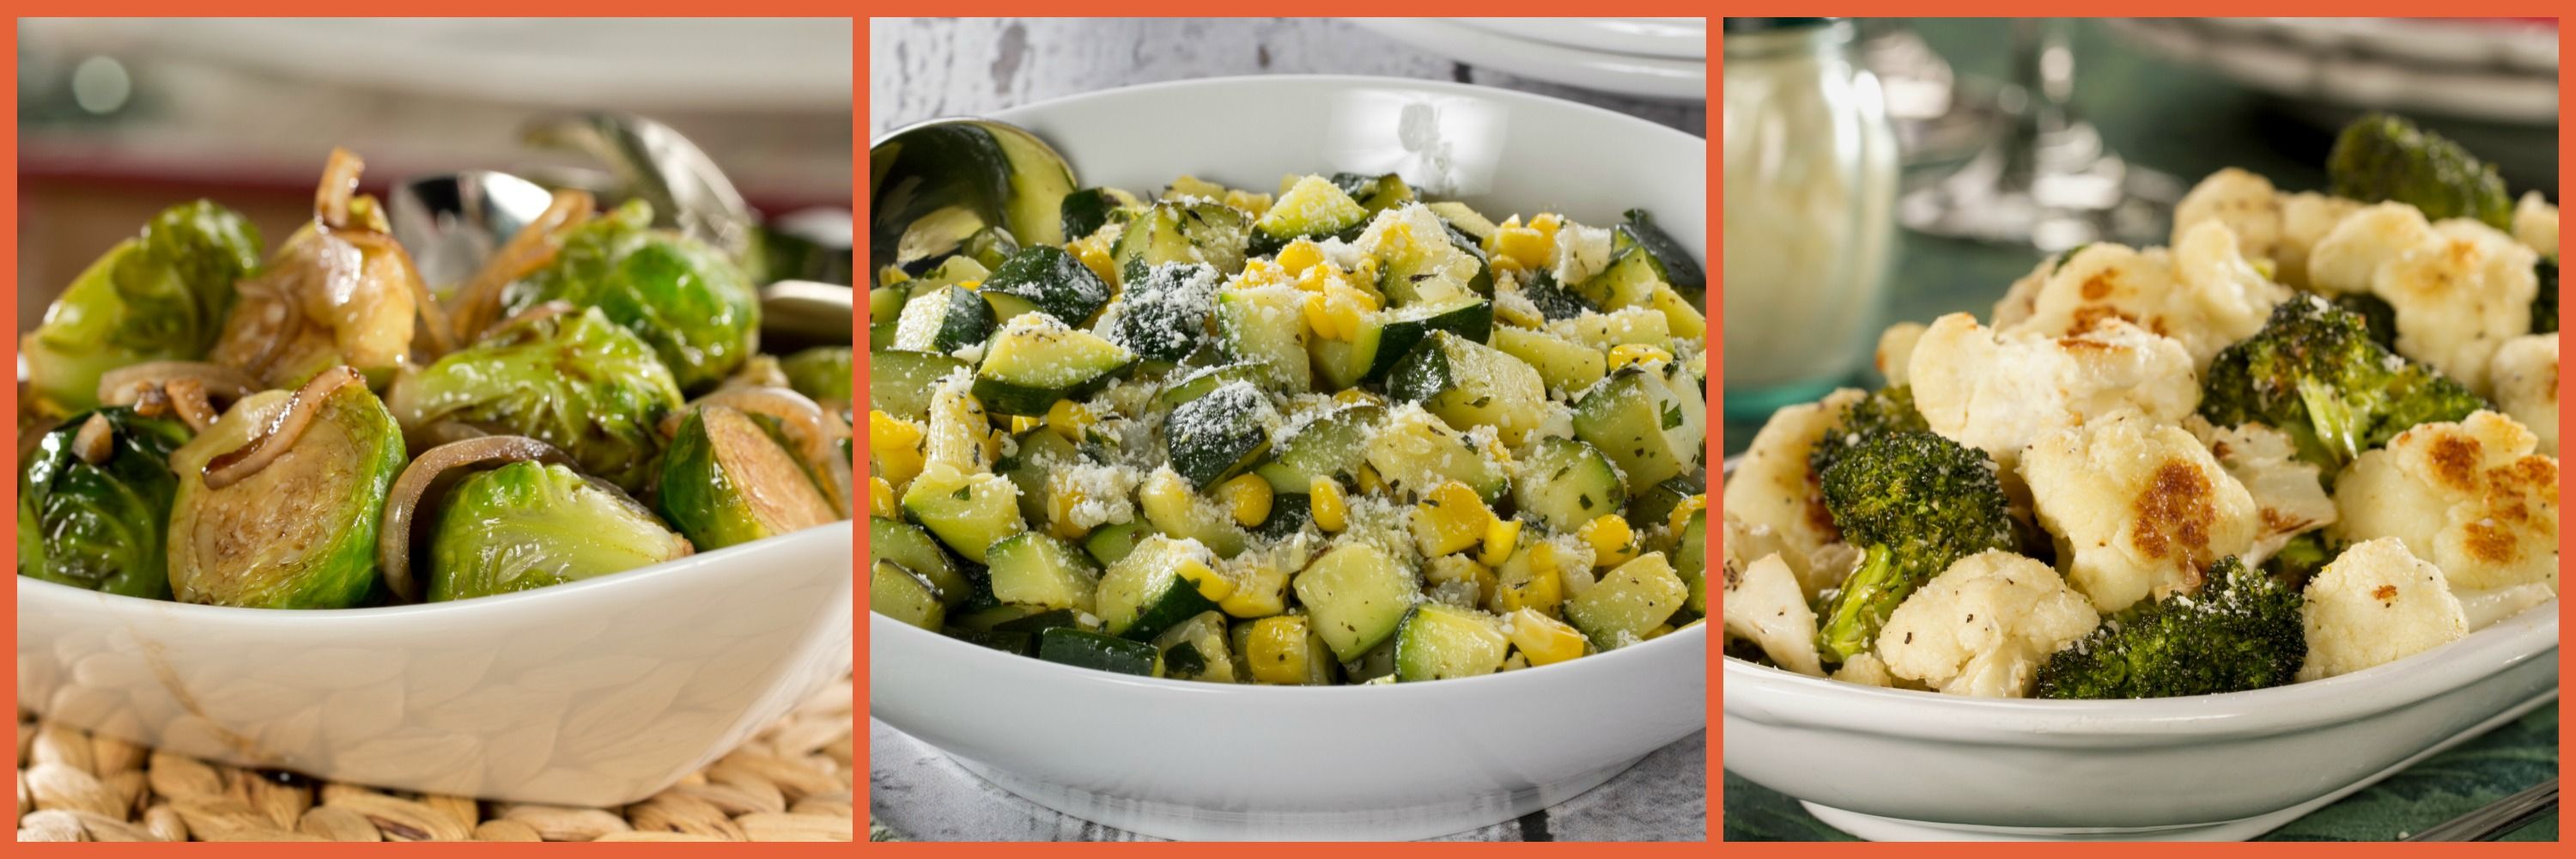 Simple side dishes free ecookbook mr food 39 s blog for Side dish recipes for grilling out